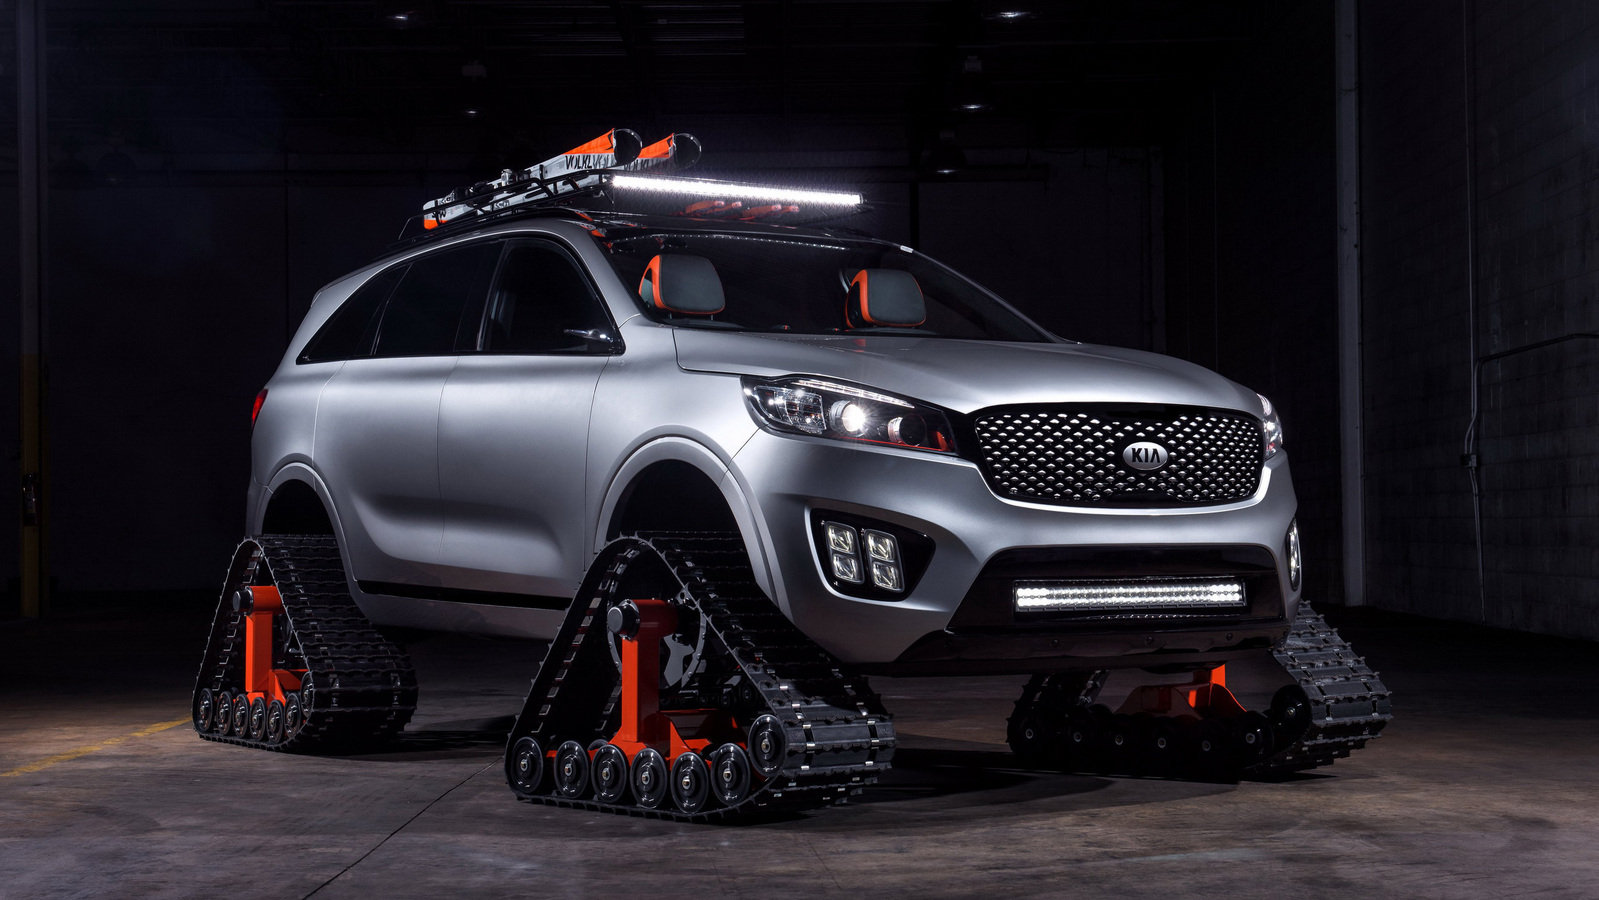 2016 Kia Sorento Ski Gondola Top Speed